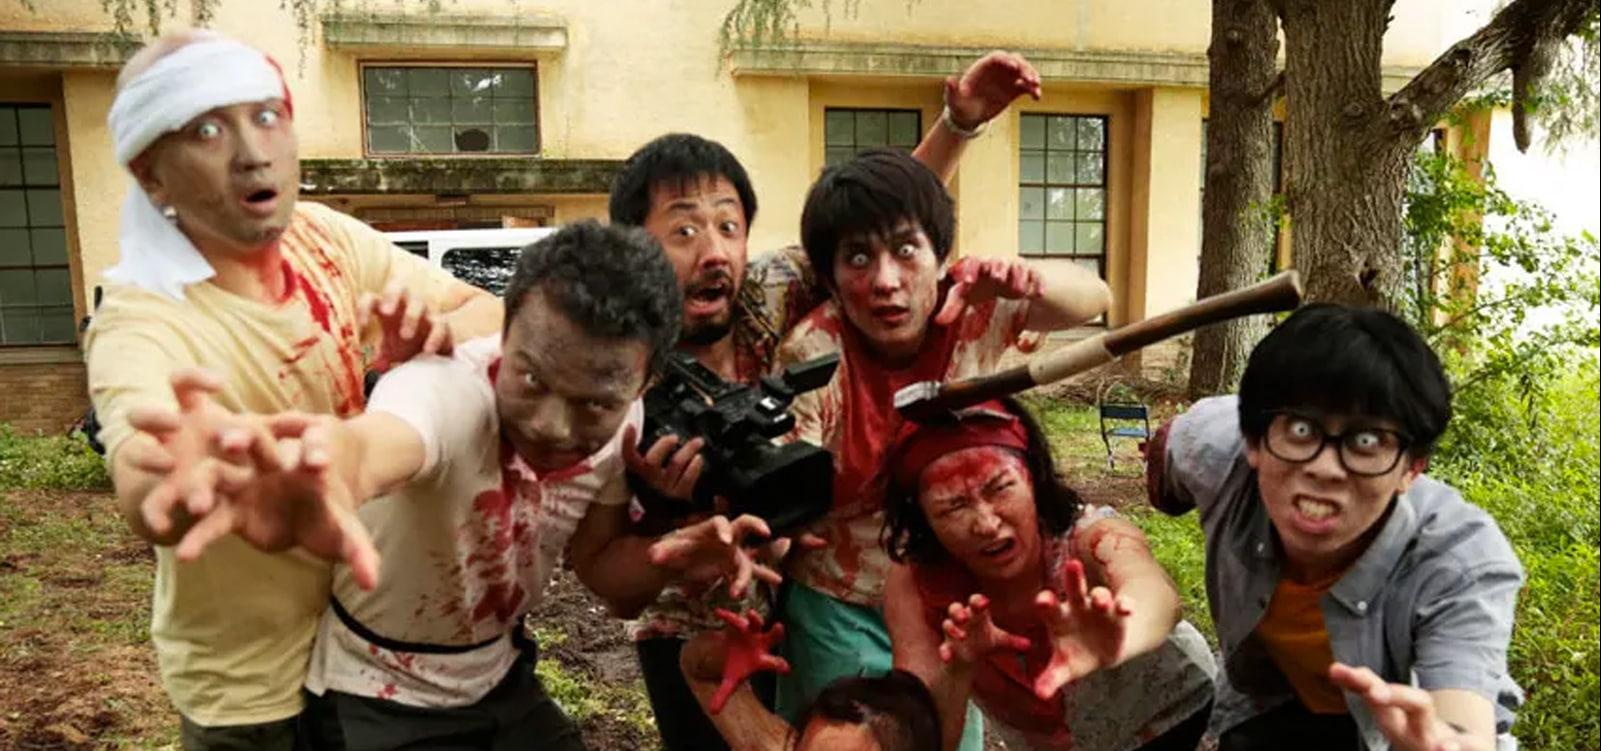 Zombie Comedy 'One Cut of the Dead' Comes to Shudder Next Week! - Bloody Disgusting